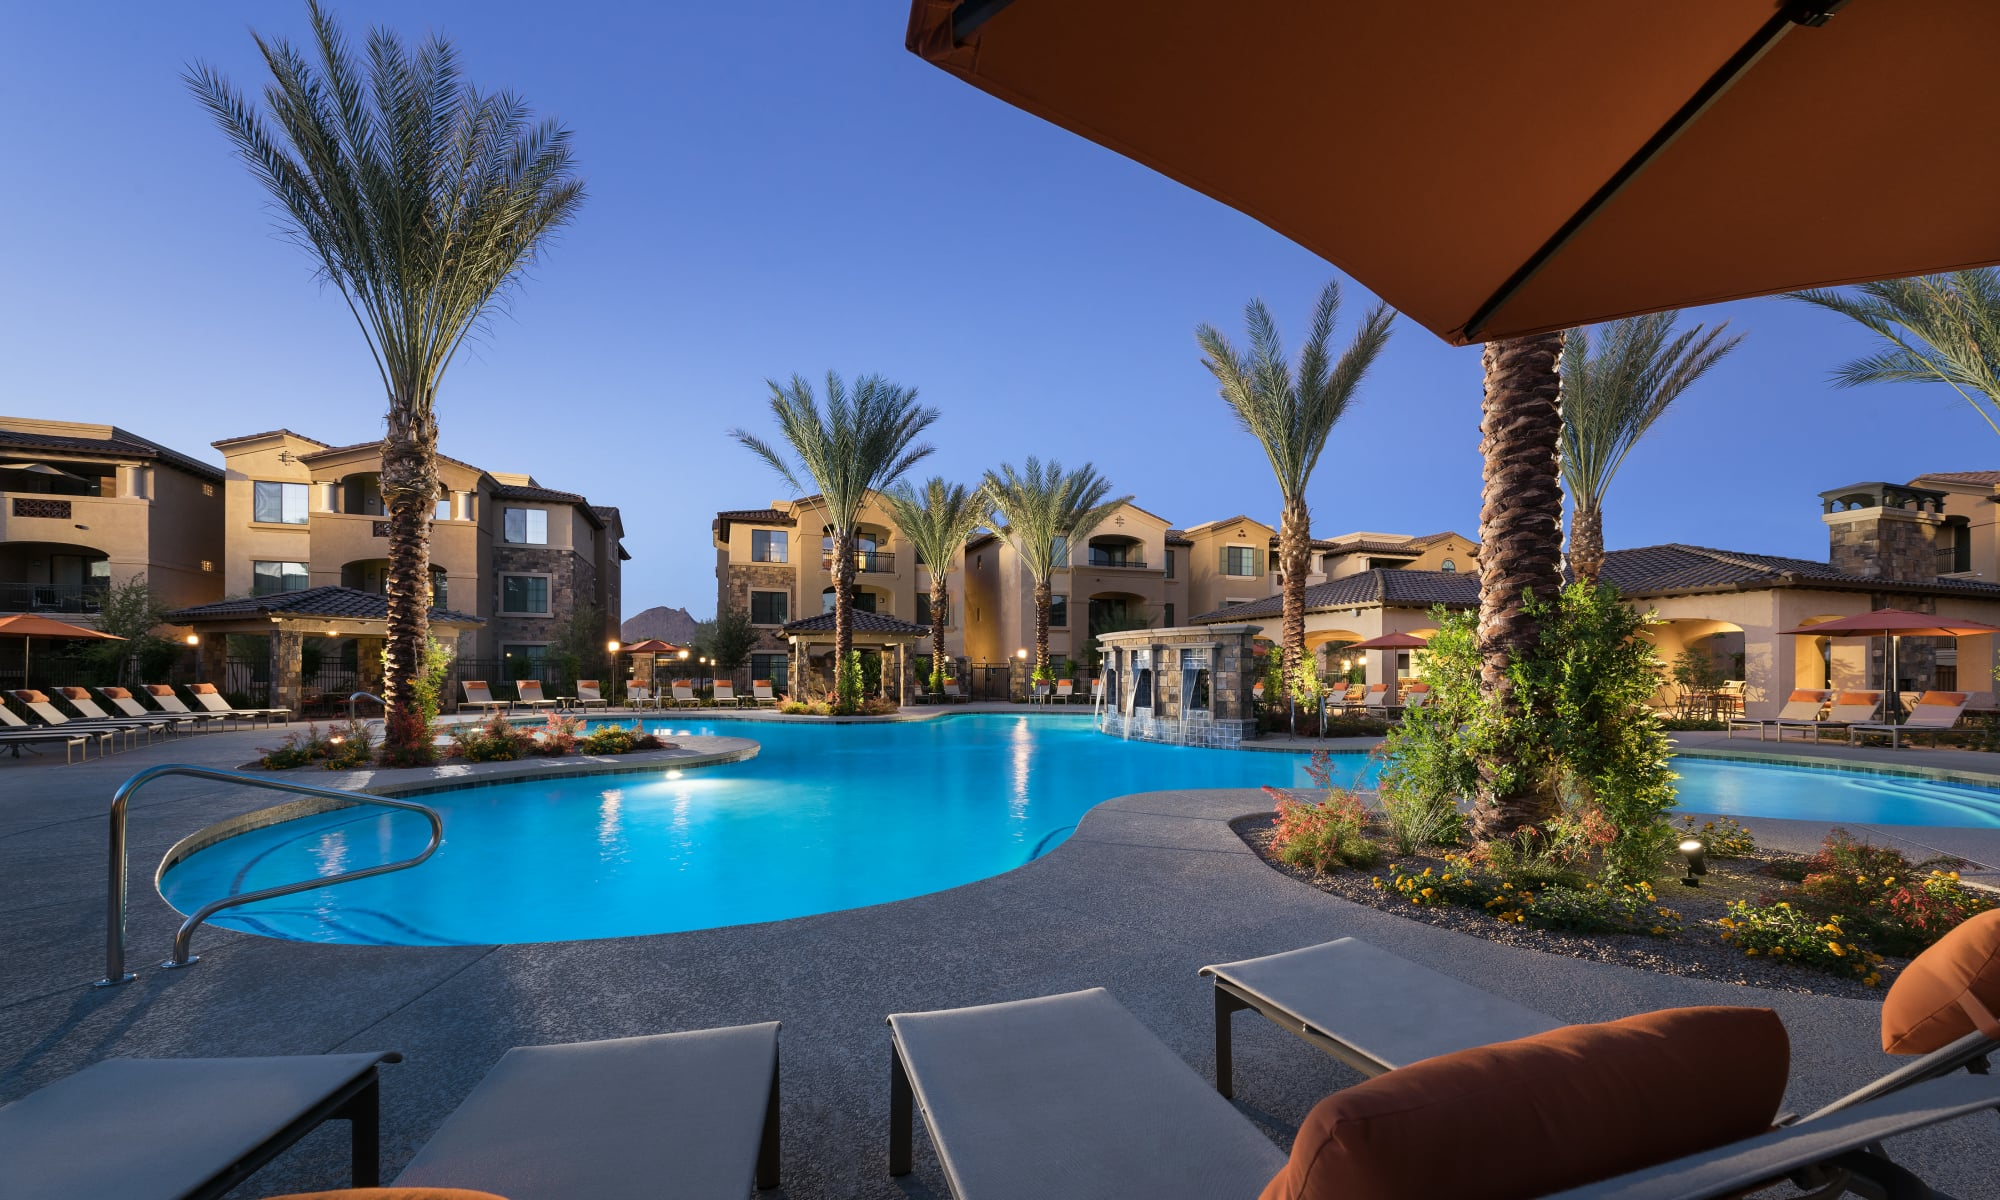 Apartments in Scottsdale, Arizona at San Portales